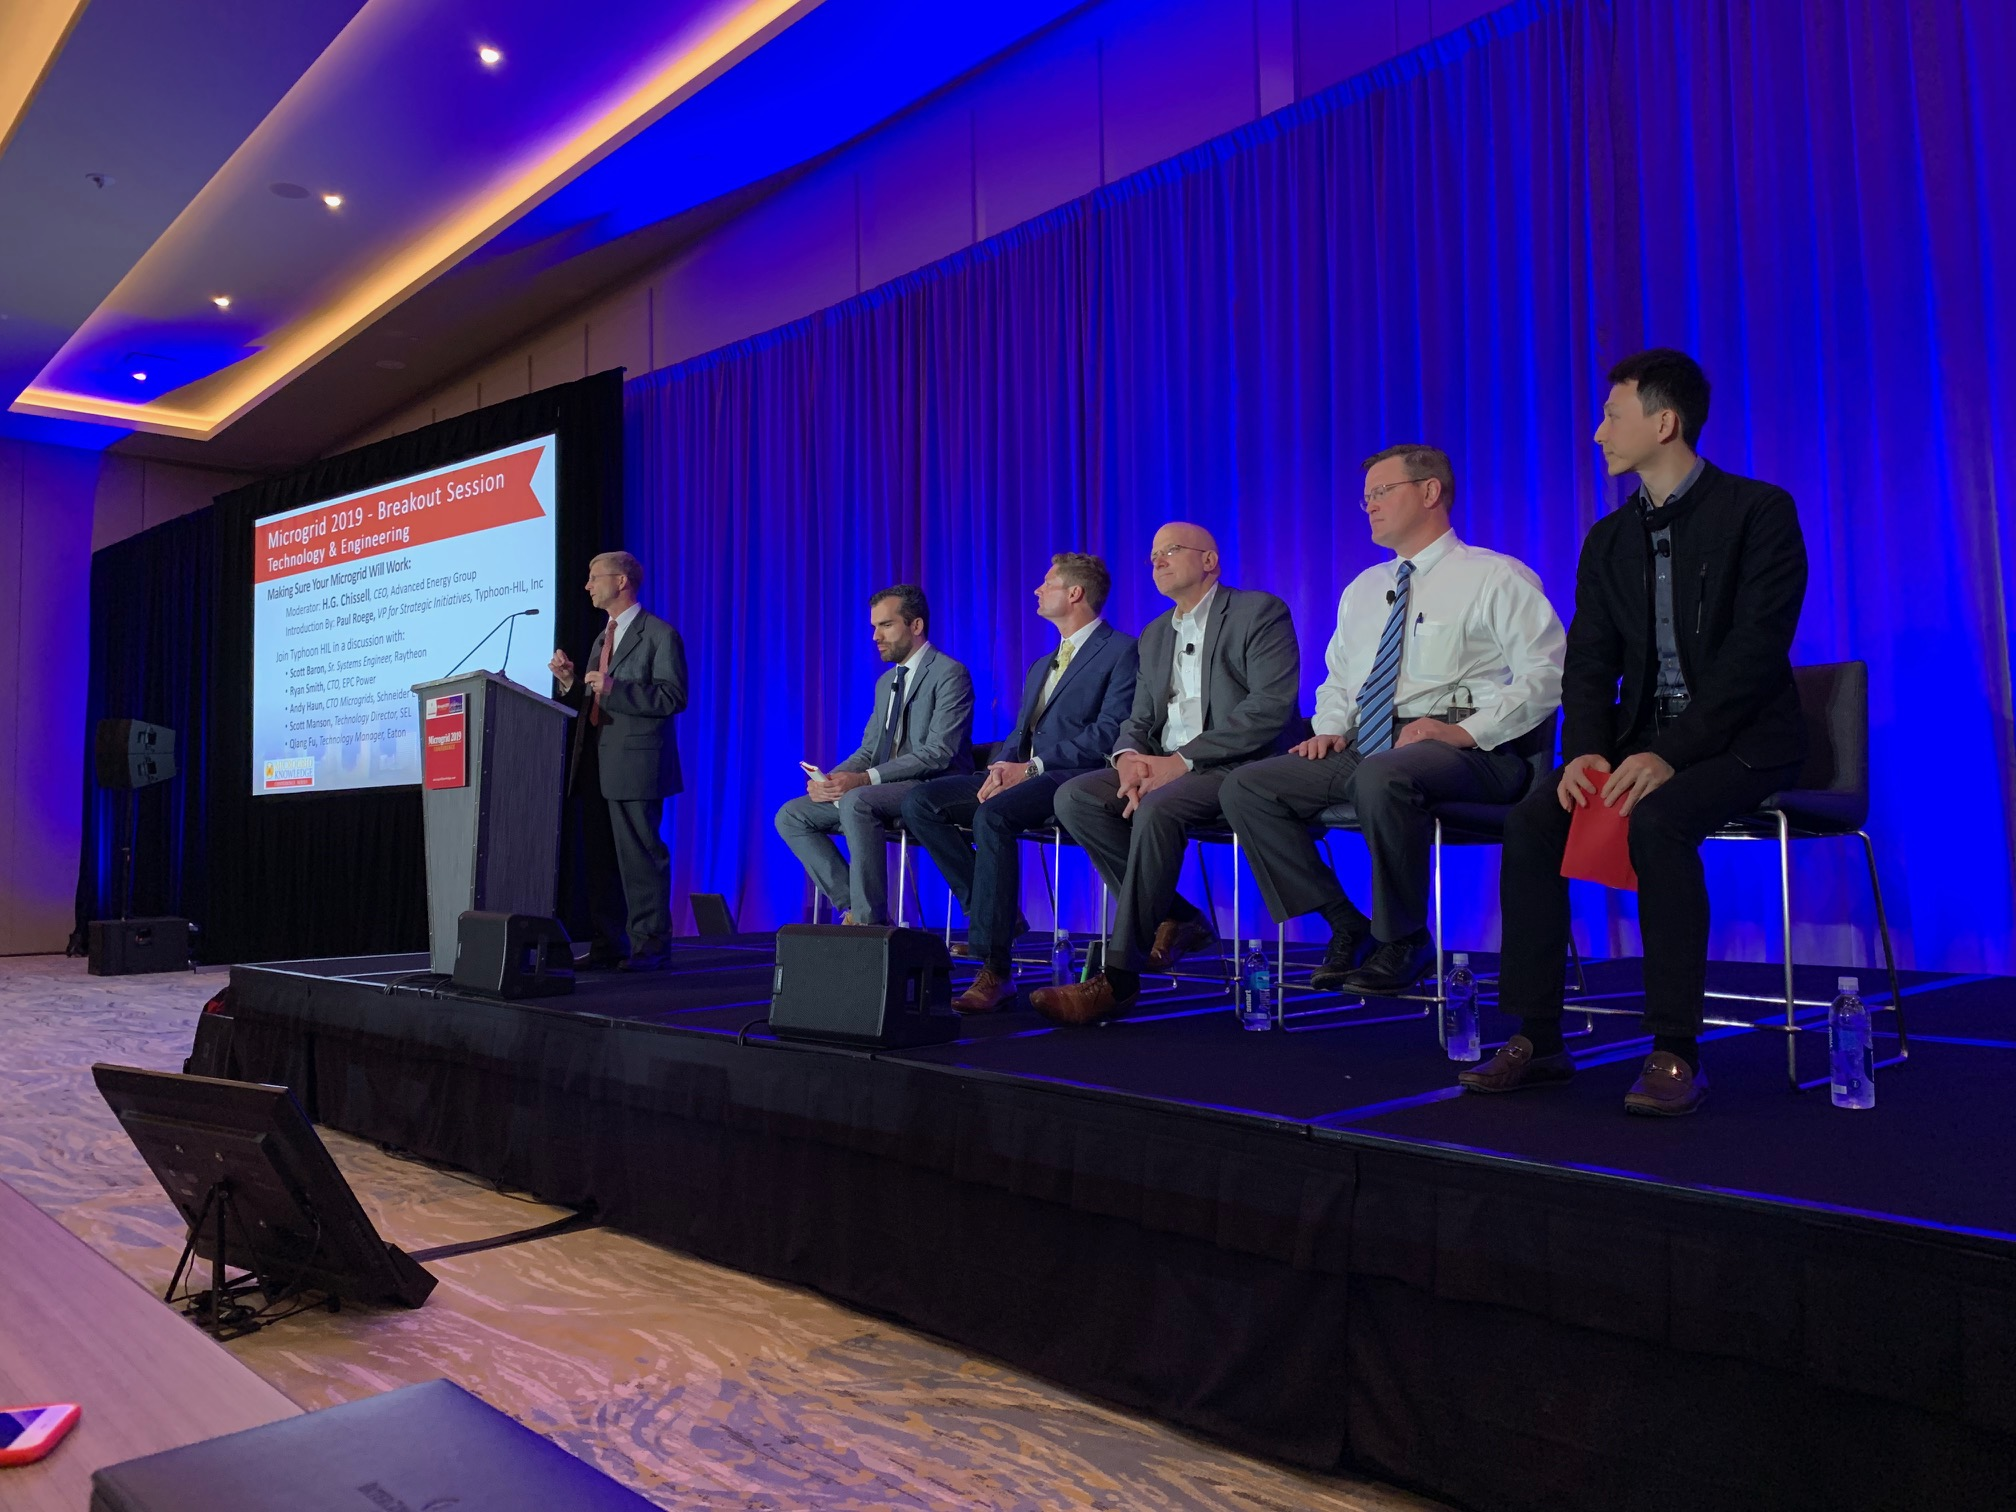 Microgrid Conference 2019 breakout session on microgrid controller hadware-in-the-loop